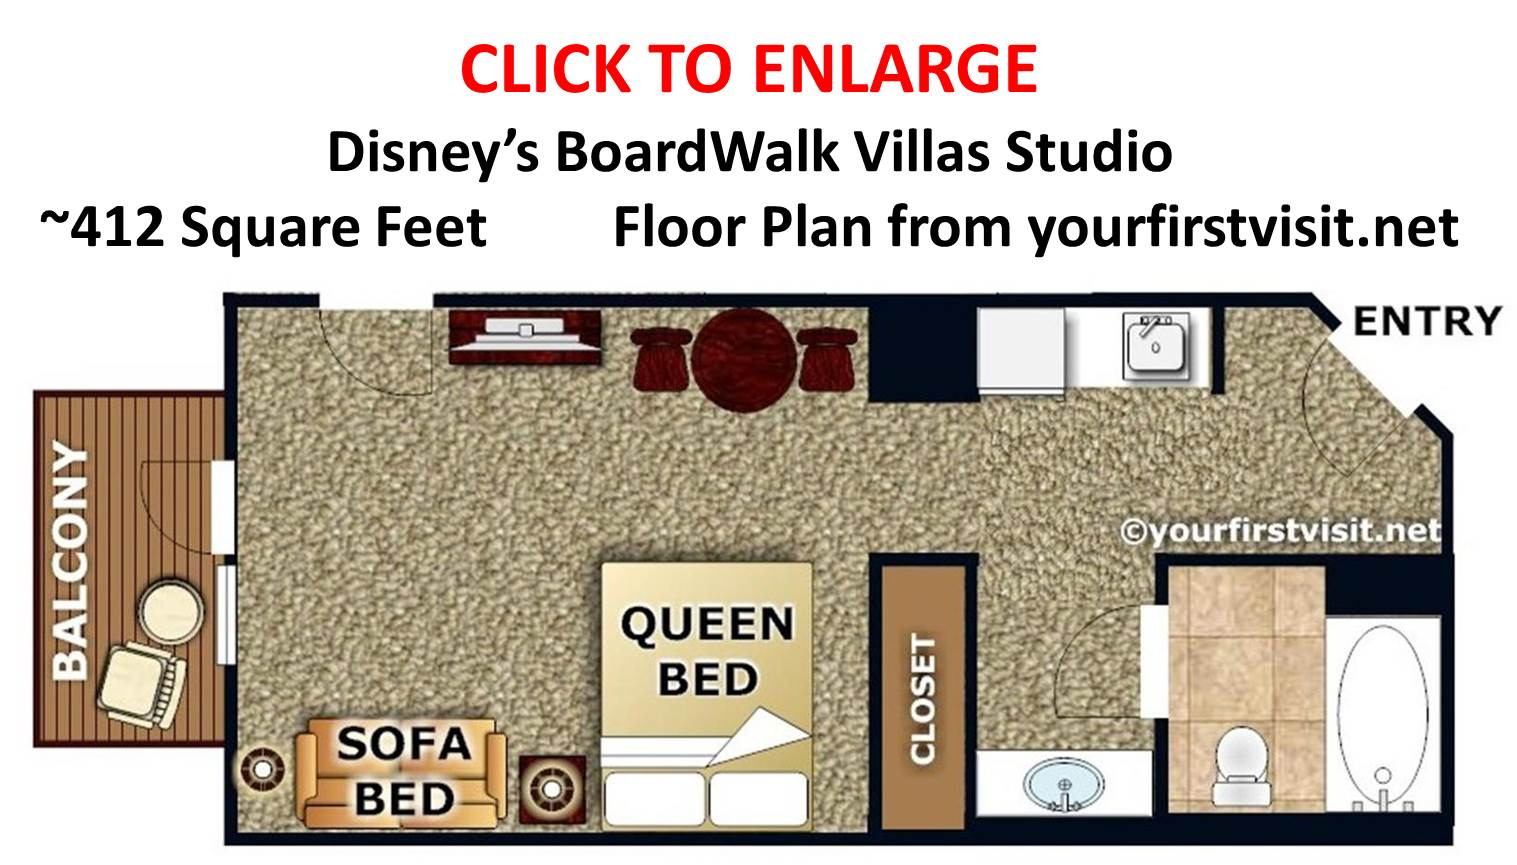 Disney's BoardWalk Villas Studio Floor Plan from yourfirstvisit.net